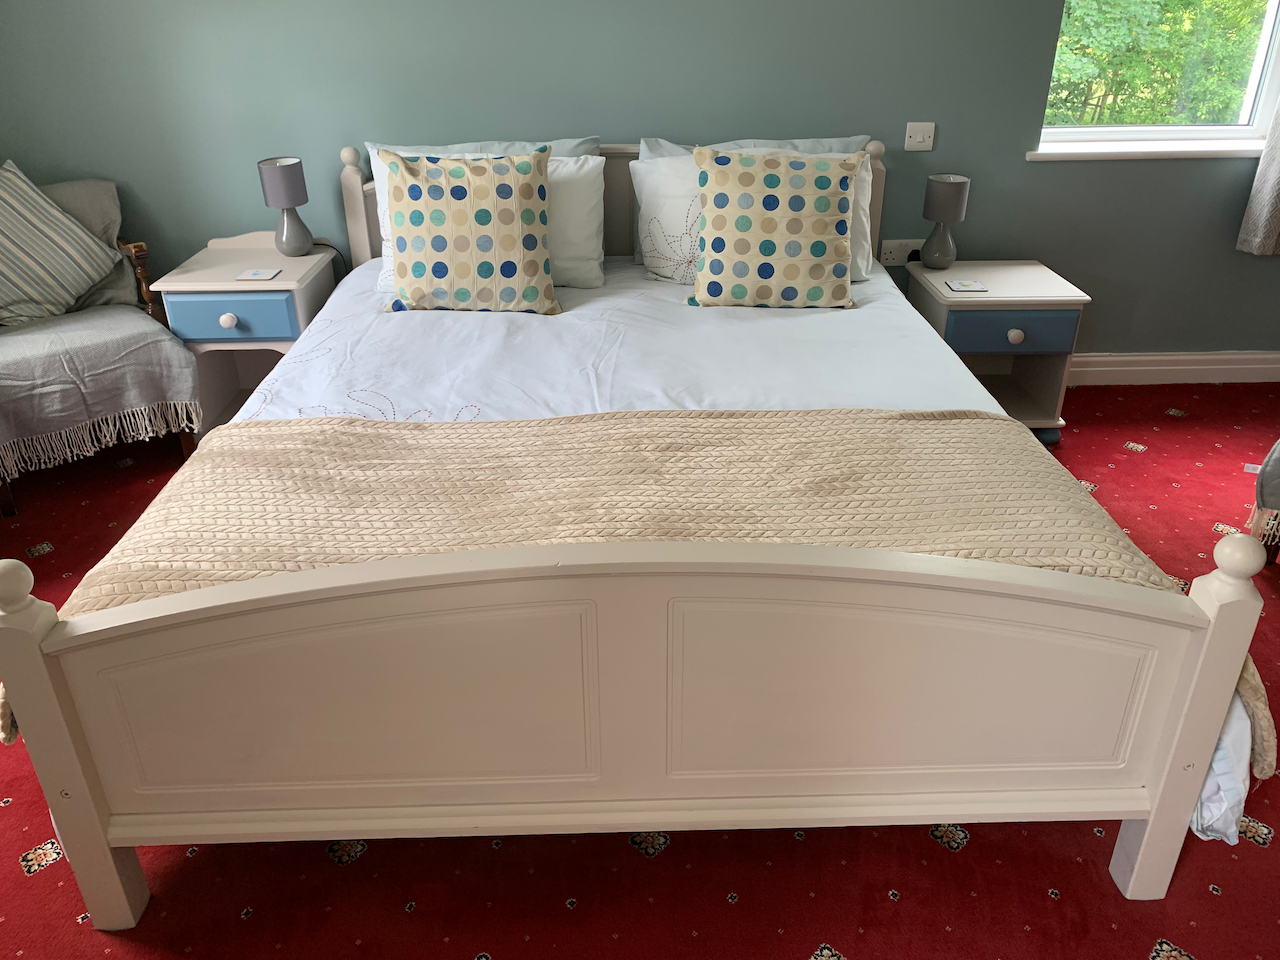 Comfortable king sized bed